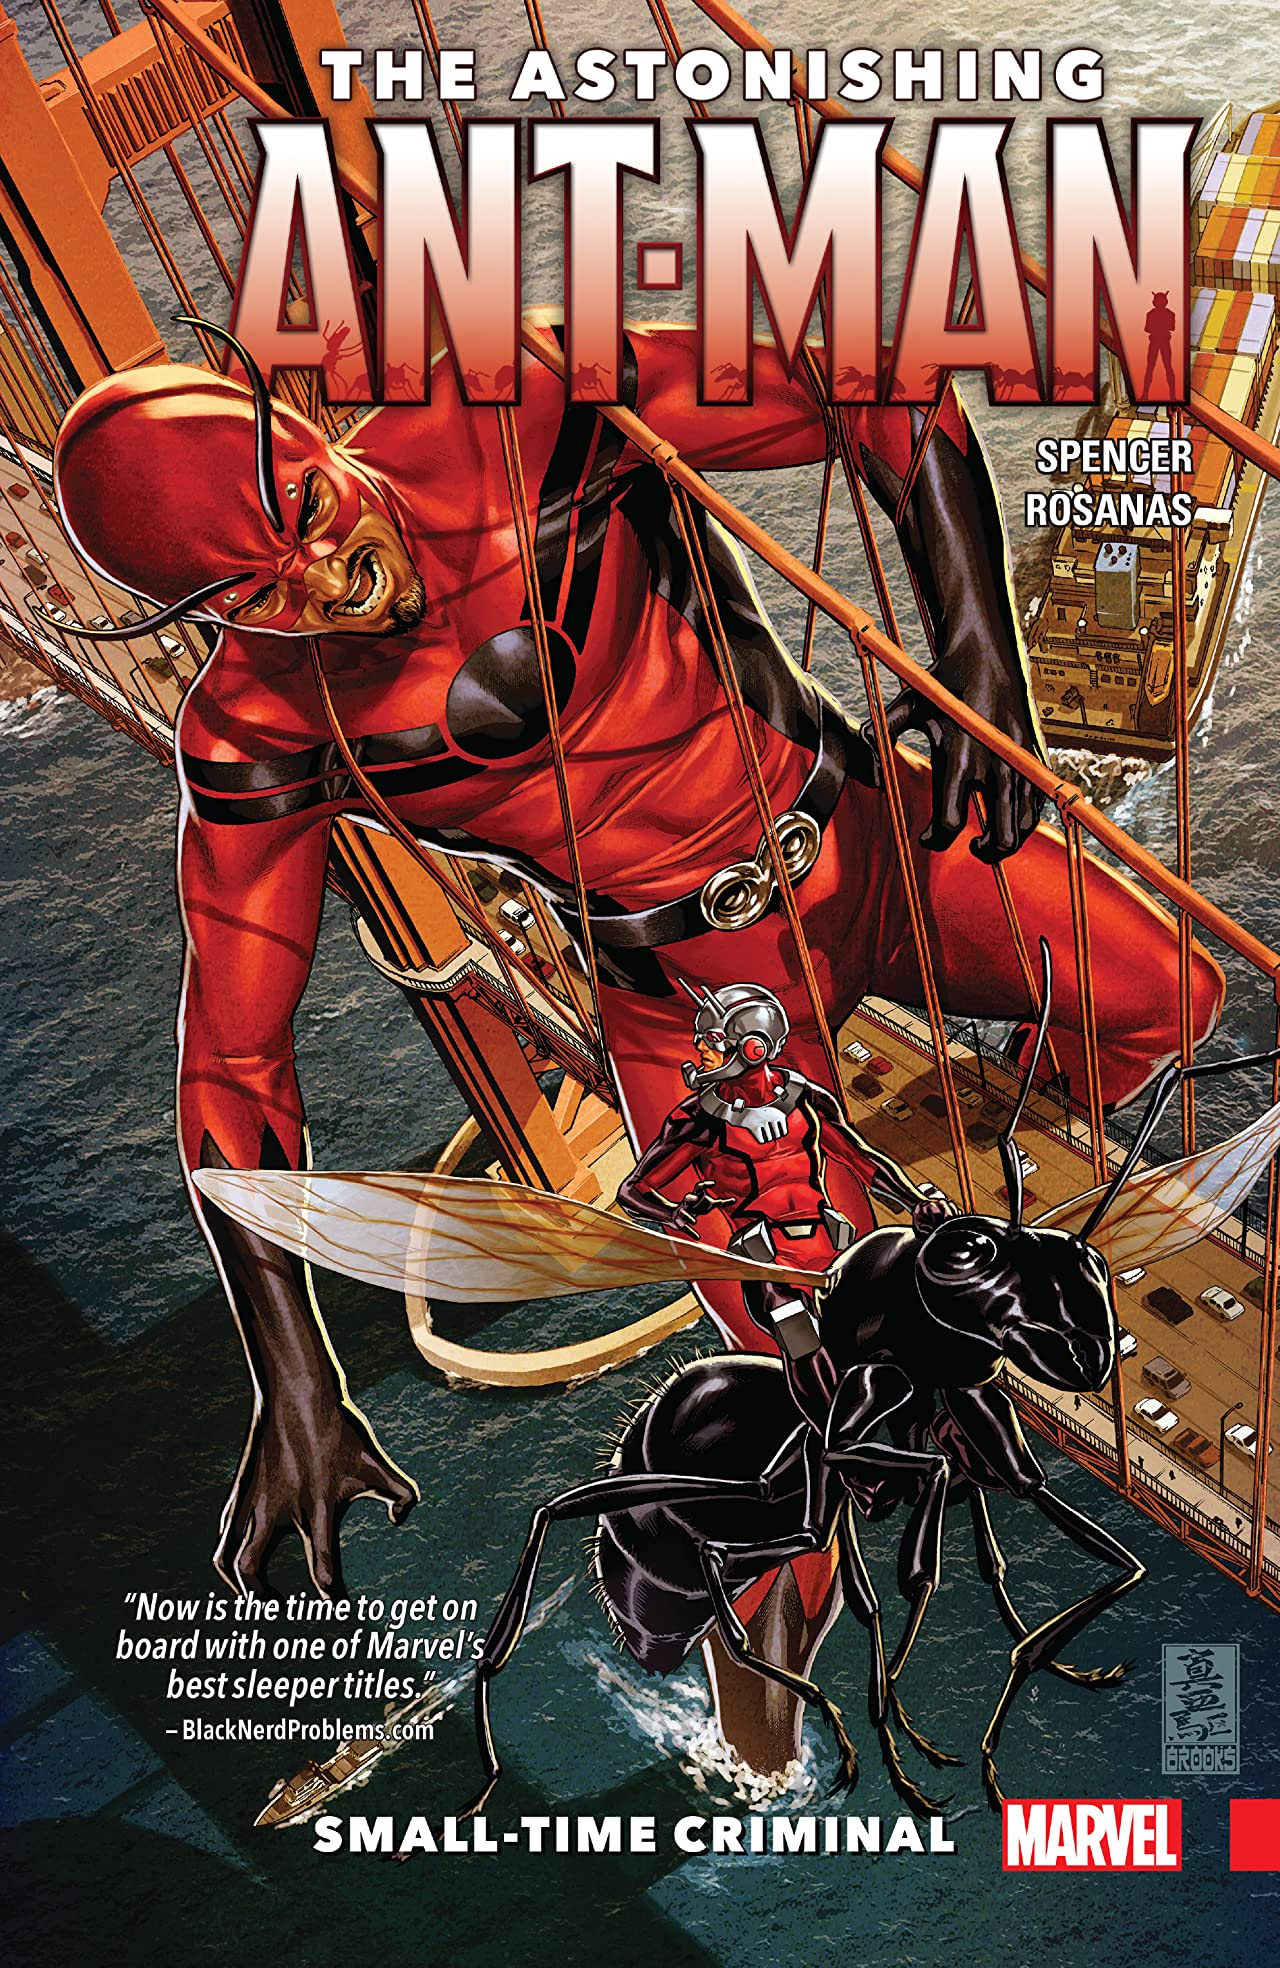 The Astonishing Ant-Man Vol. 2: Small-Time Criminal